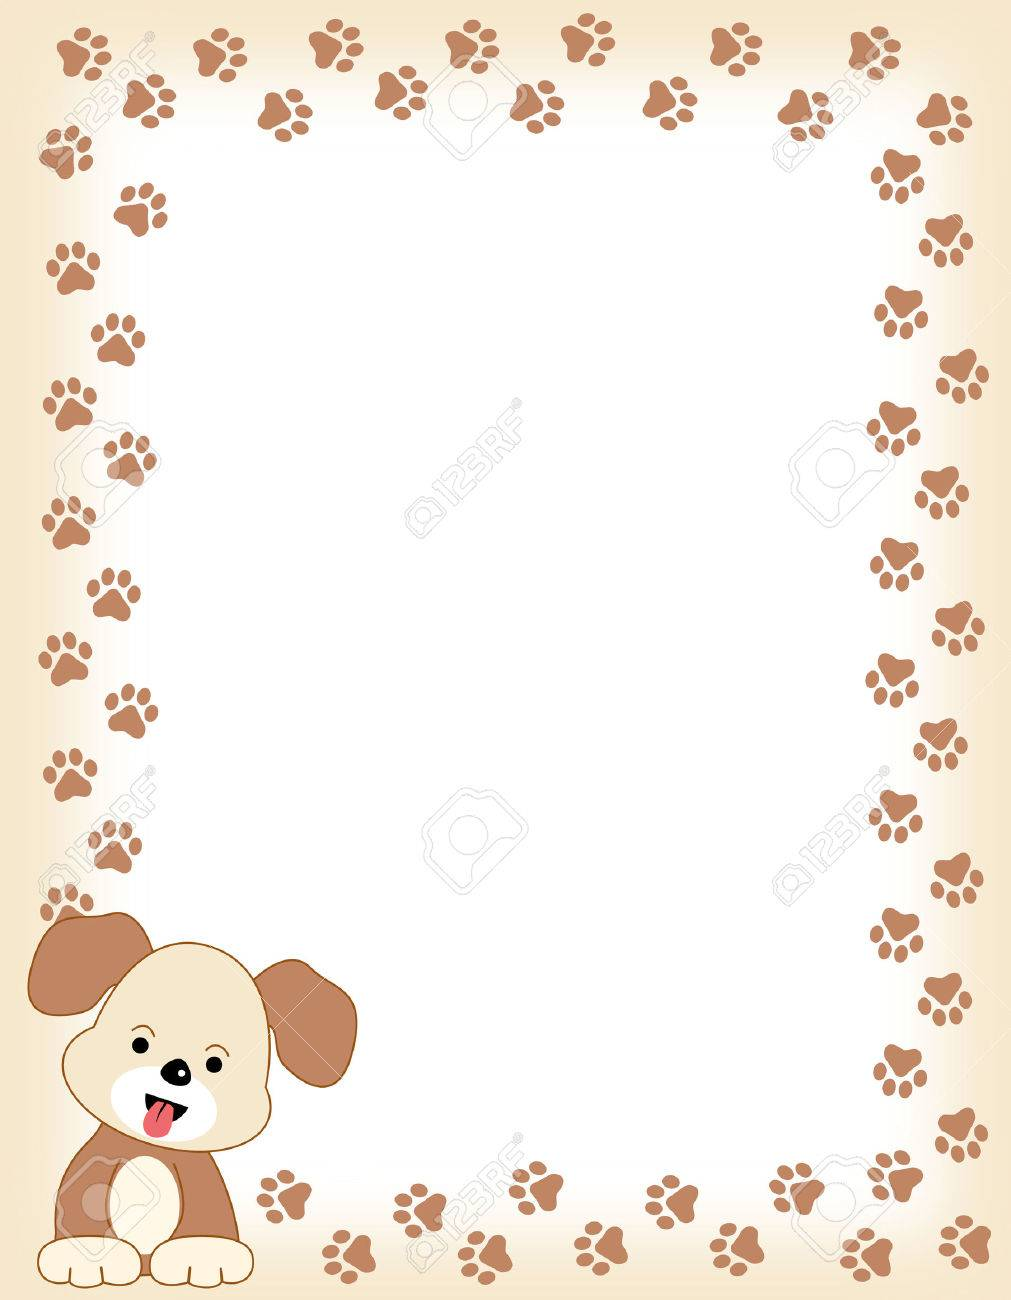 Brown Color Dog Paw Print Border Frame With A Cute Dog In Left